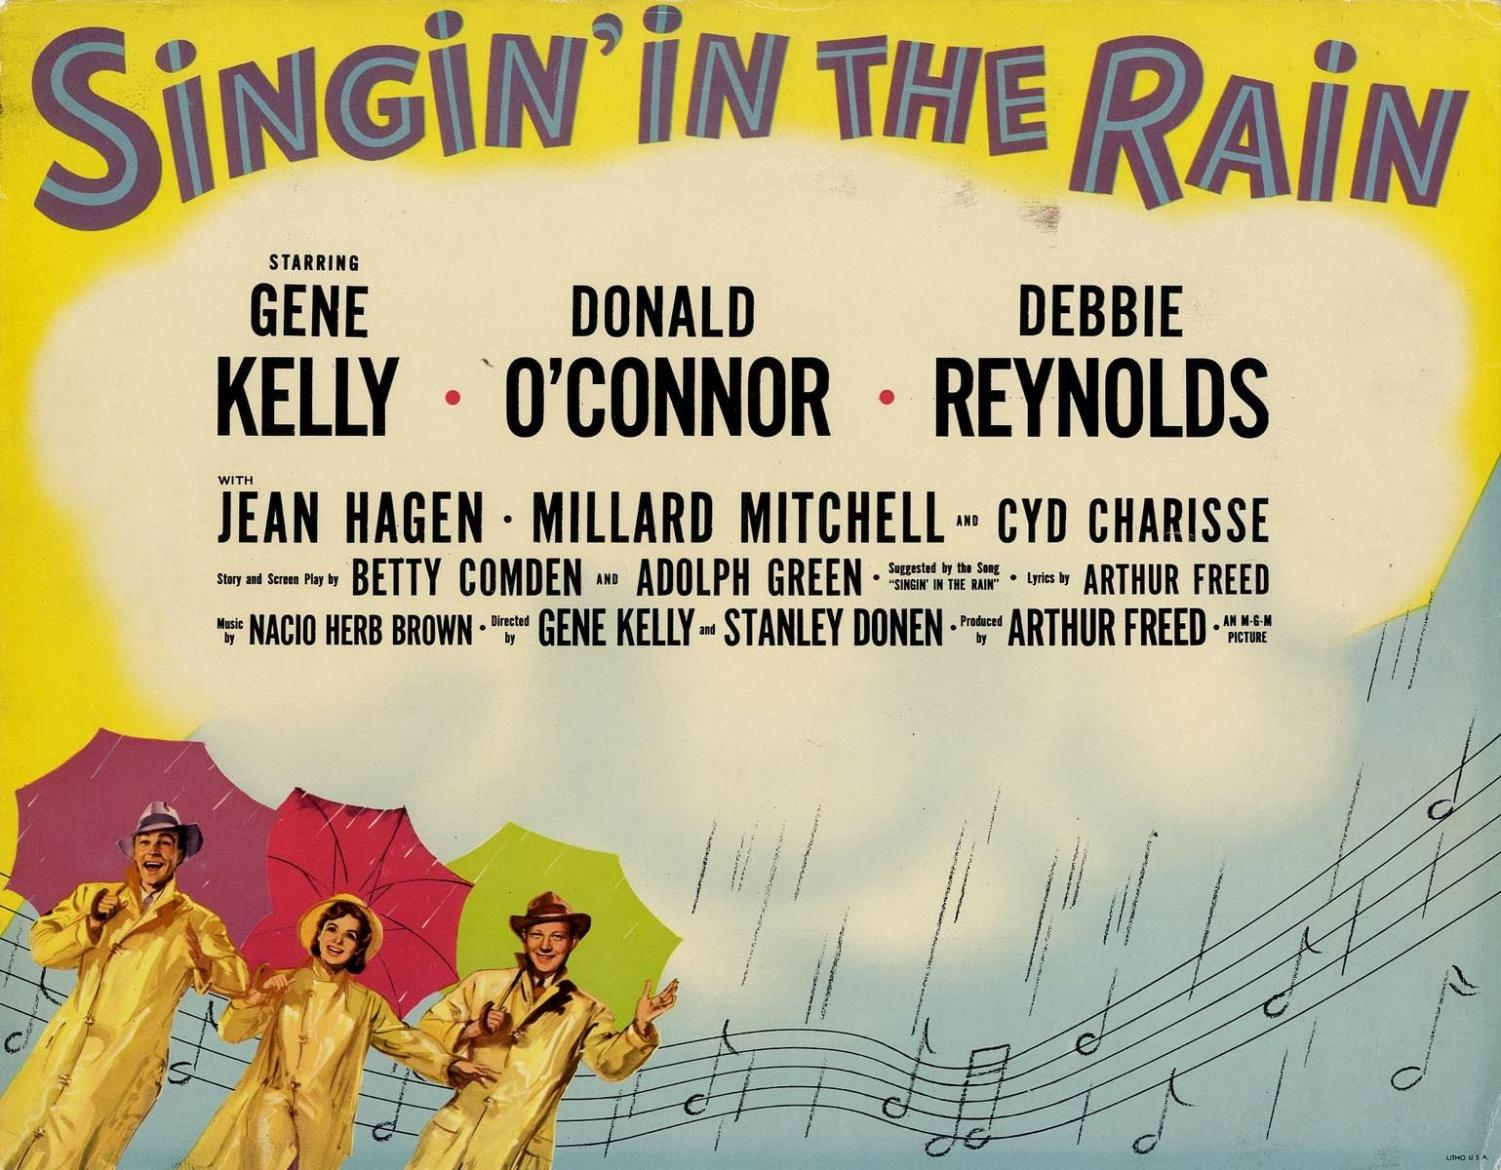 Because of this movie, Debbie Reynolds, only 19 at the time rose to stardom.